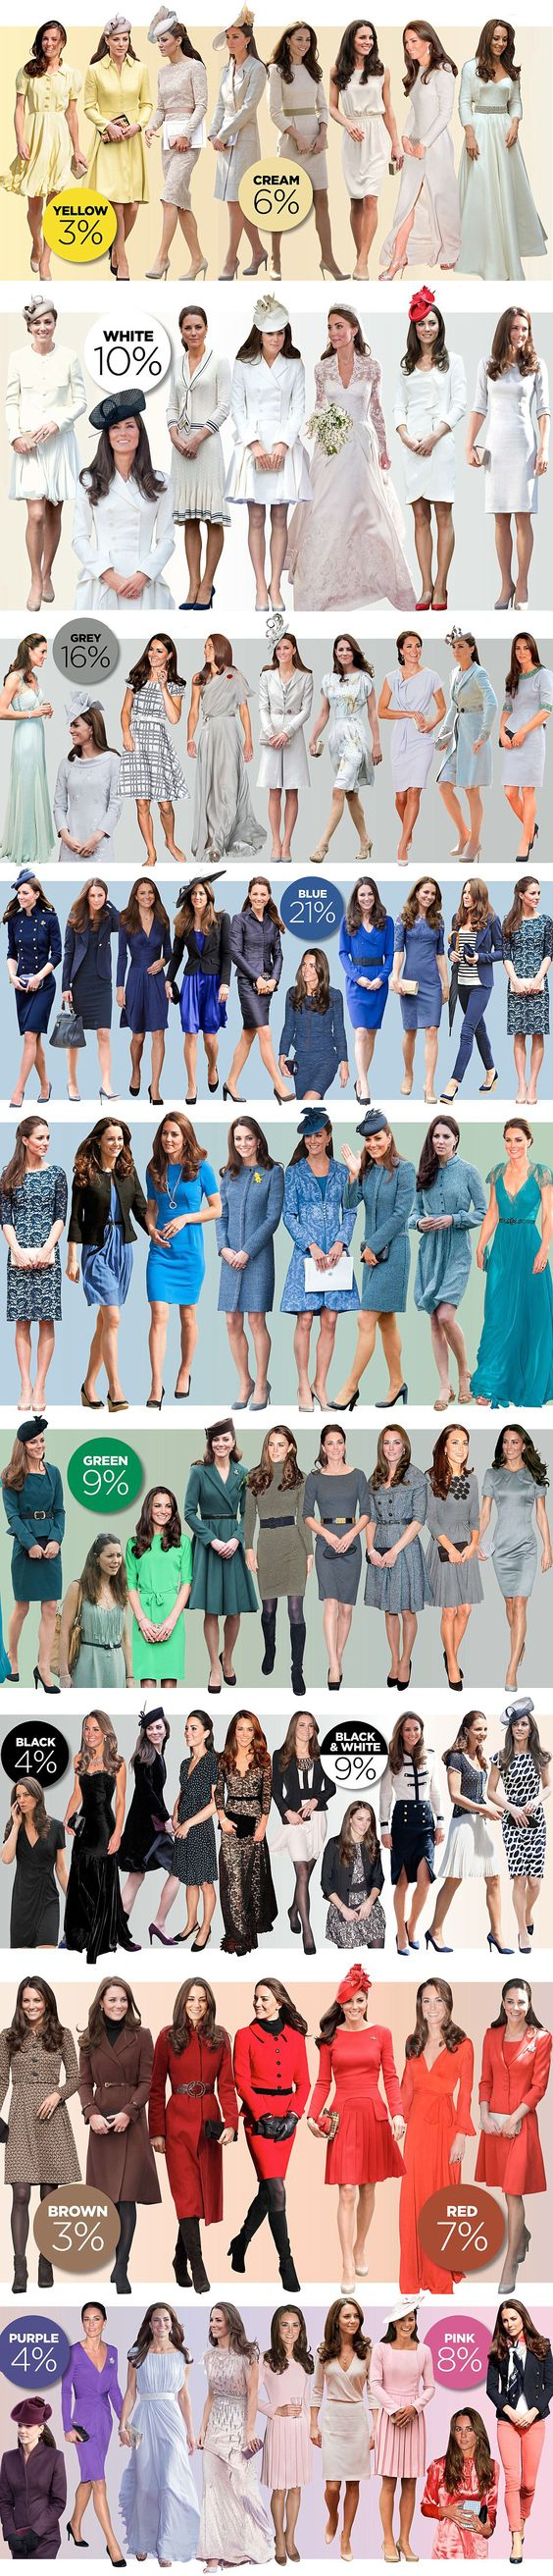 kate_middleton_all_dresses_colours.jpg